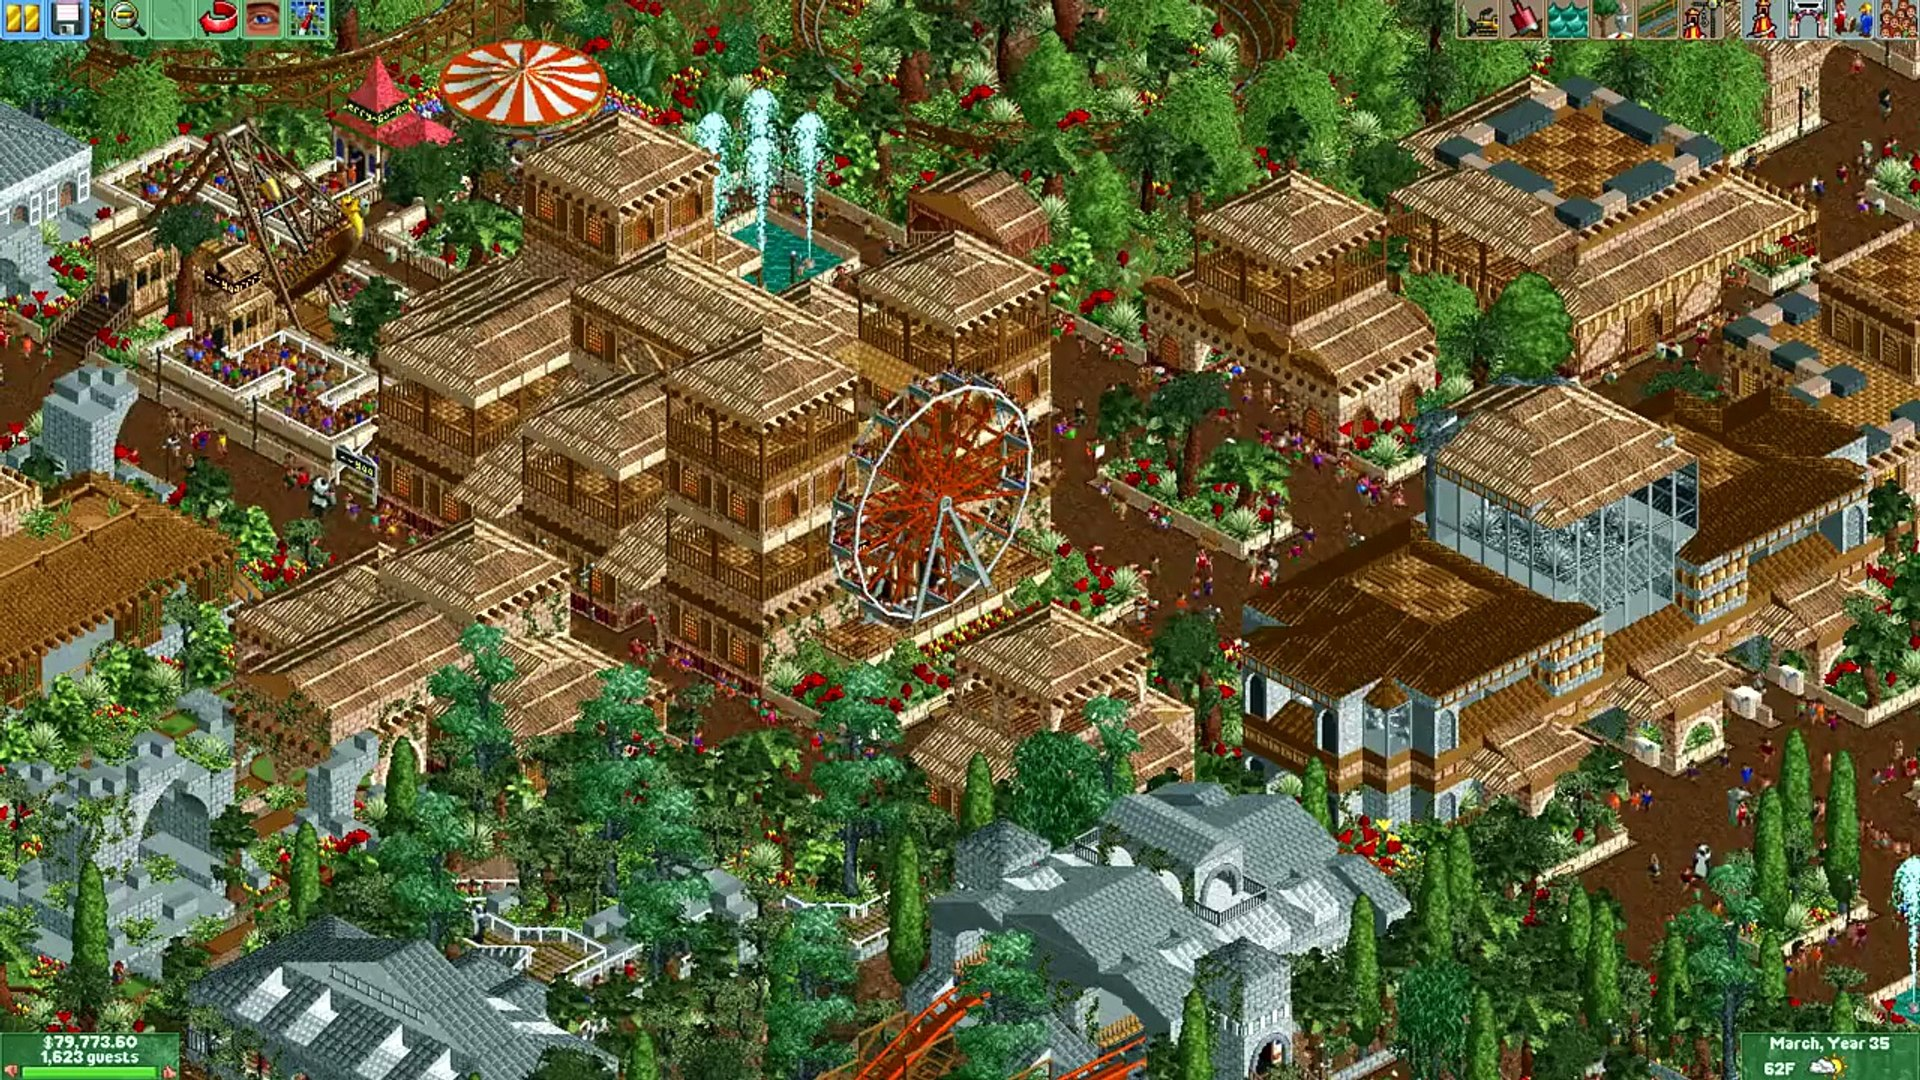 Rollercoaster Tycoon 2 - Sunset Valley (Won 1st Place in the Reddit  February Competition)